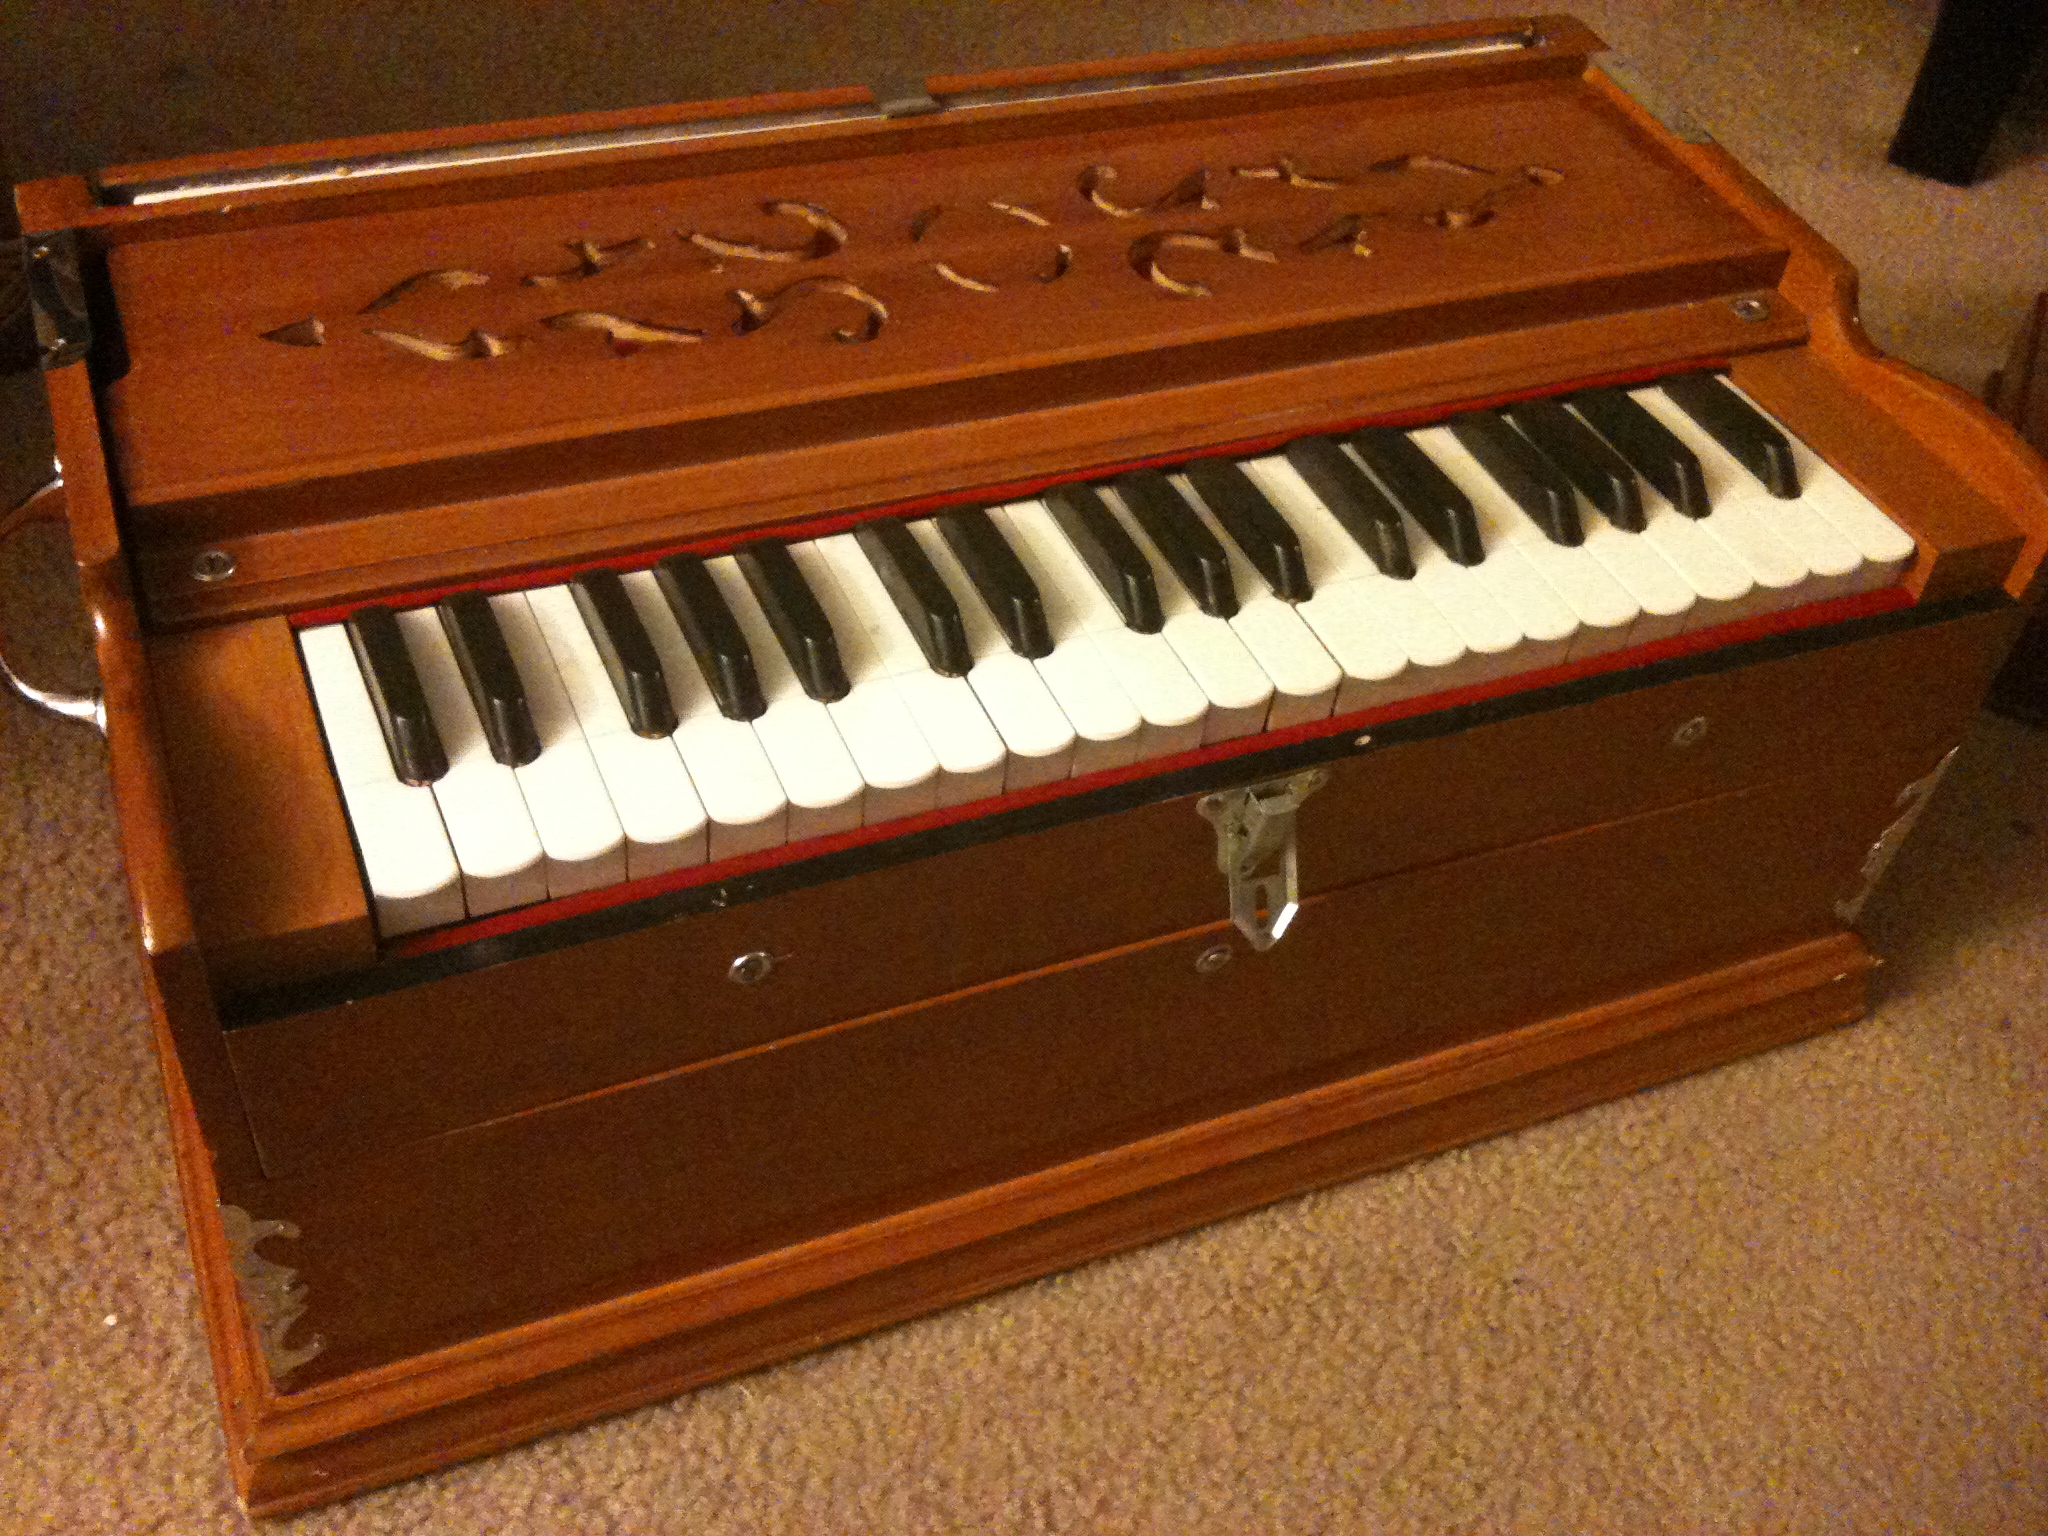 Harmonium. Image Courtesy: Wikipedia.org